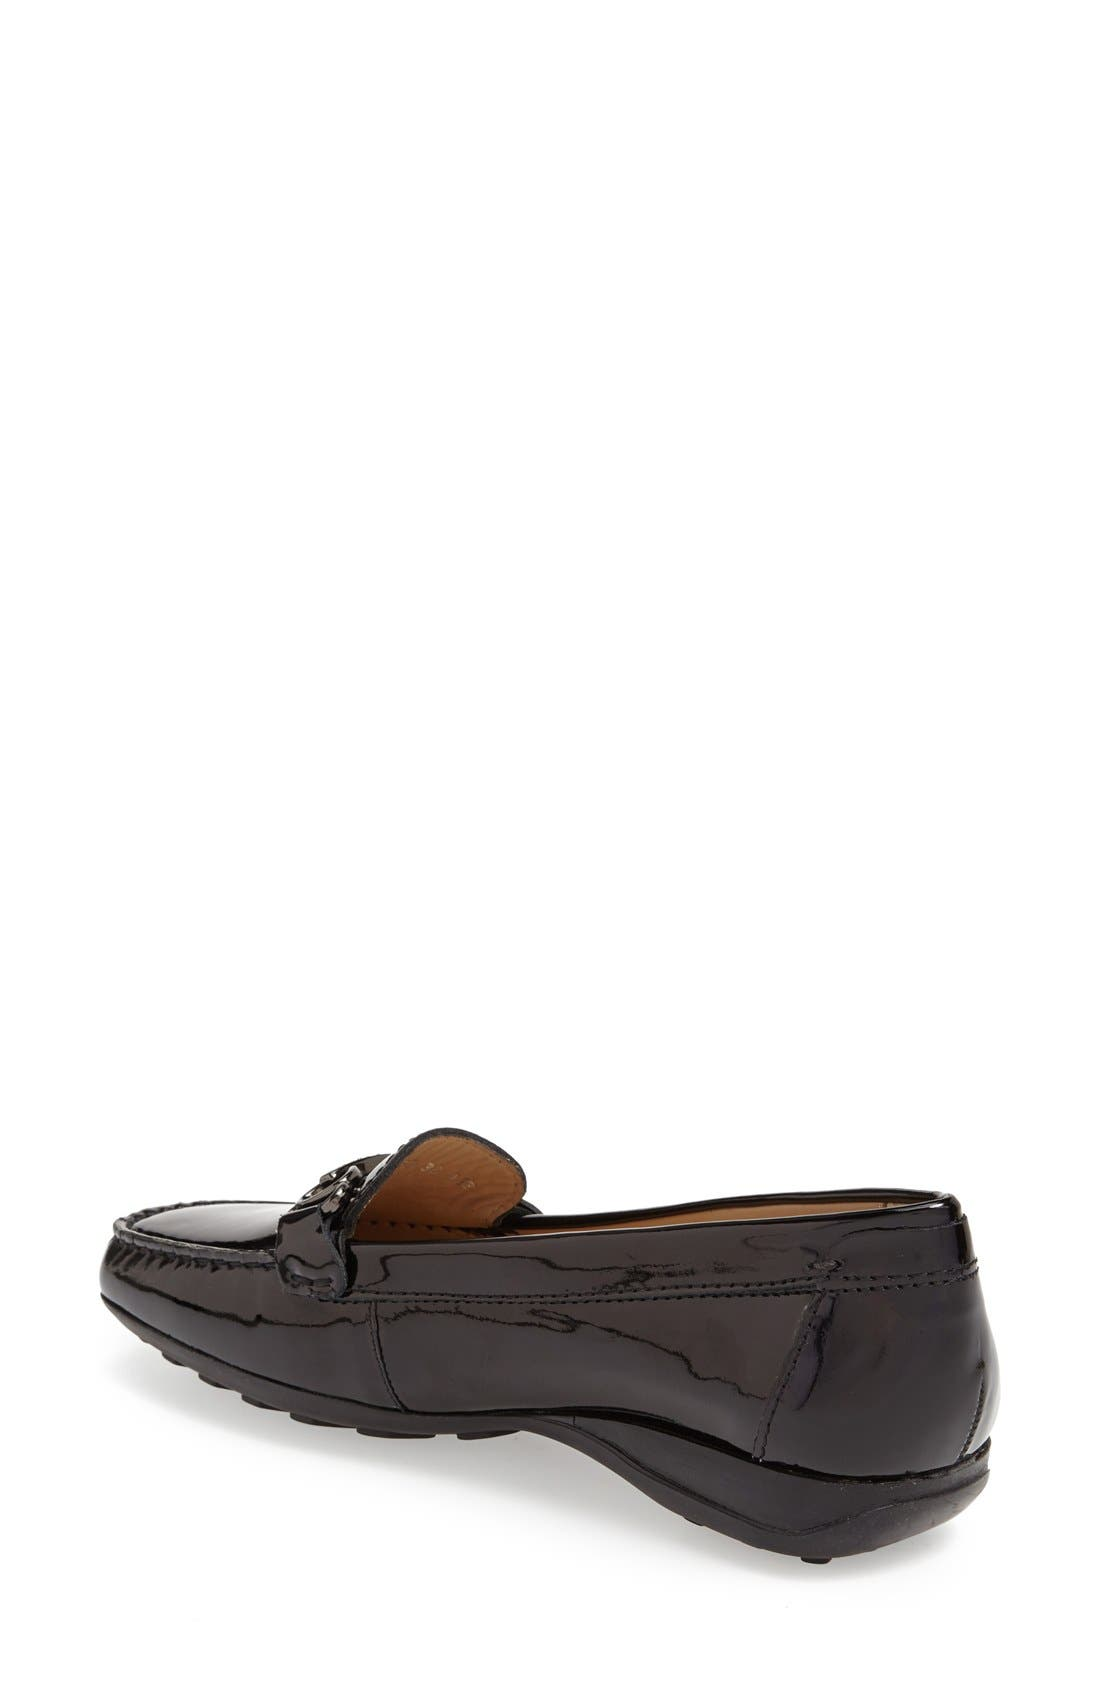 Euro 67 Loafer,                             Alternate thumbnail 41, color,